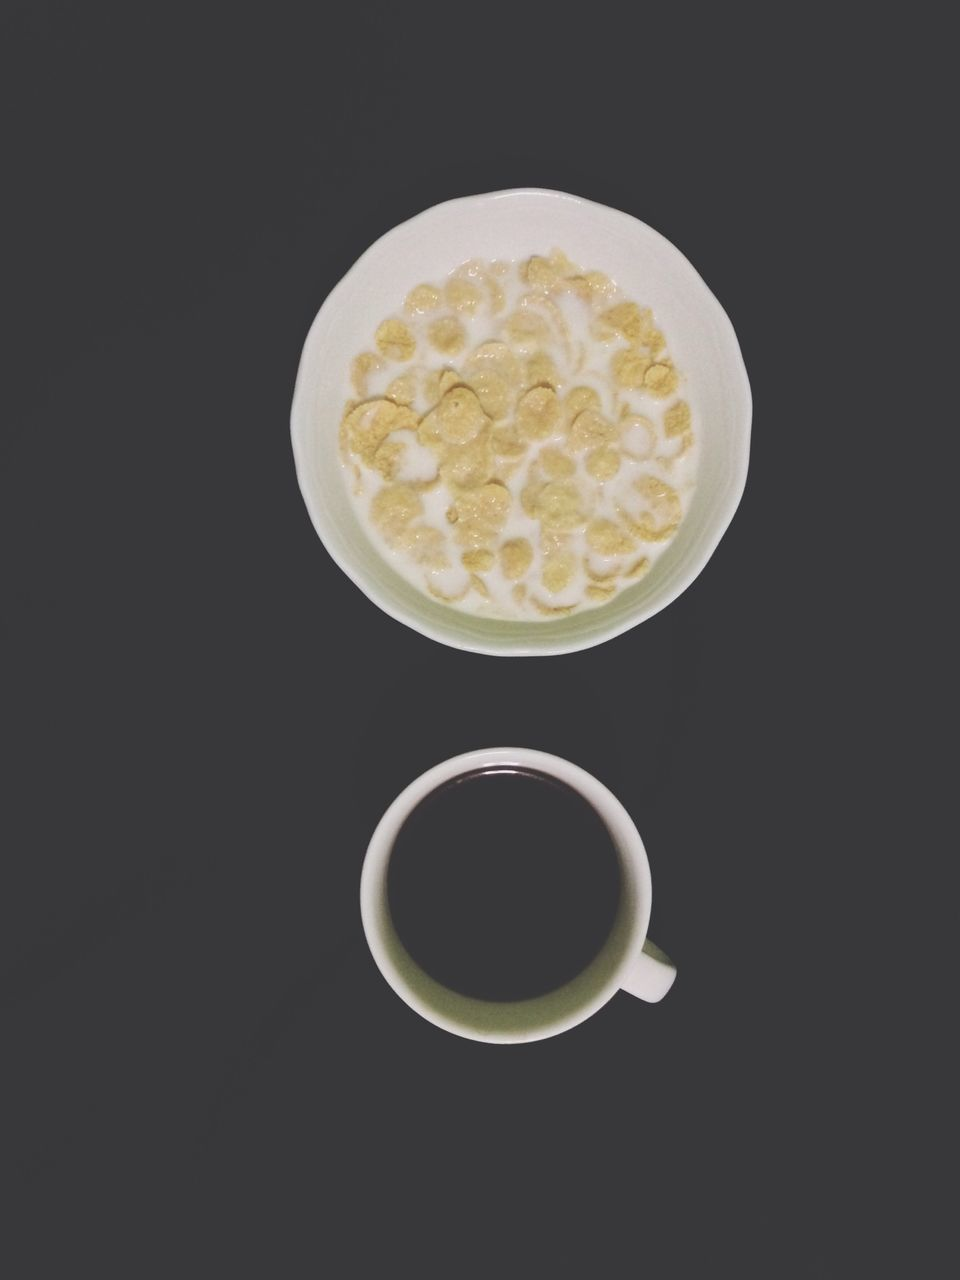 Overhead view of cornflakes and coffee over black background